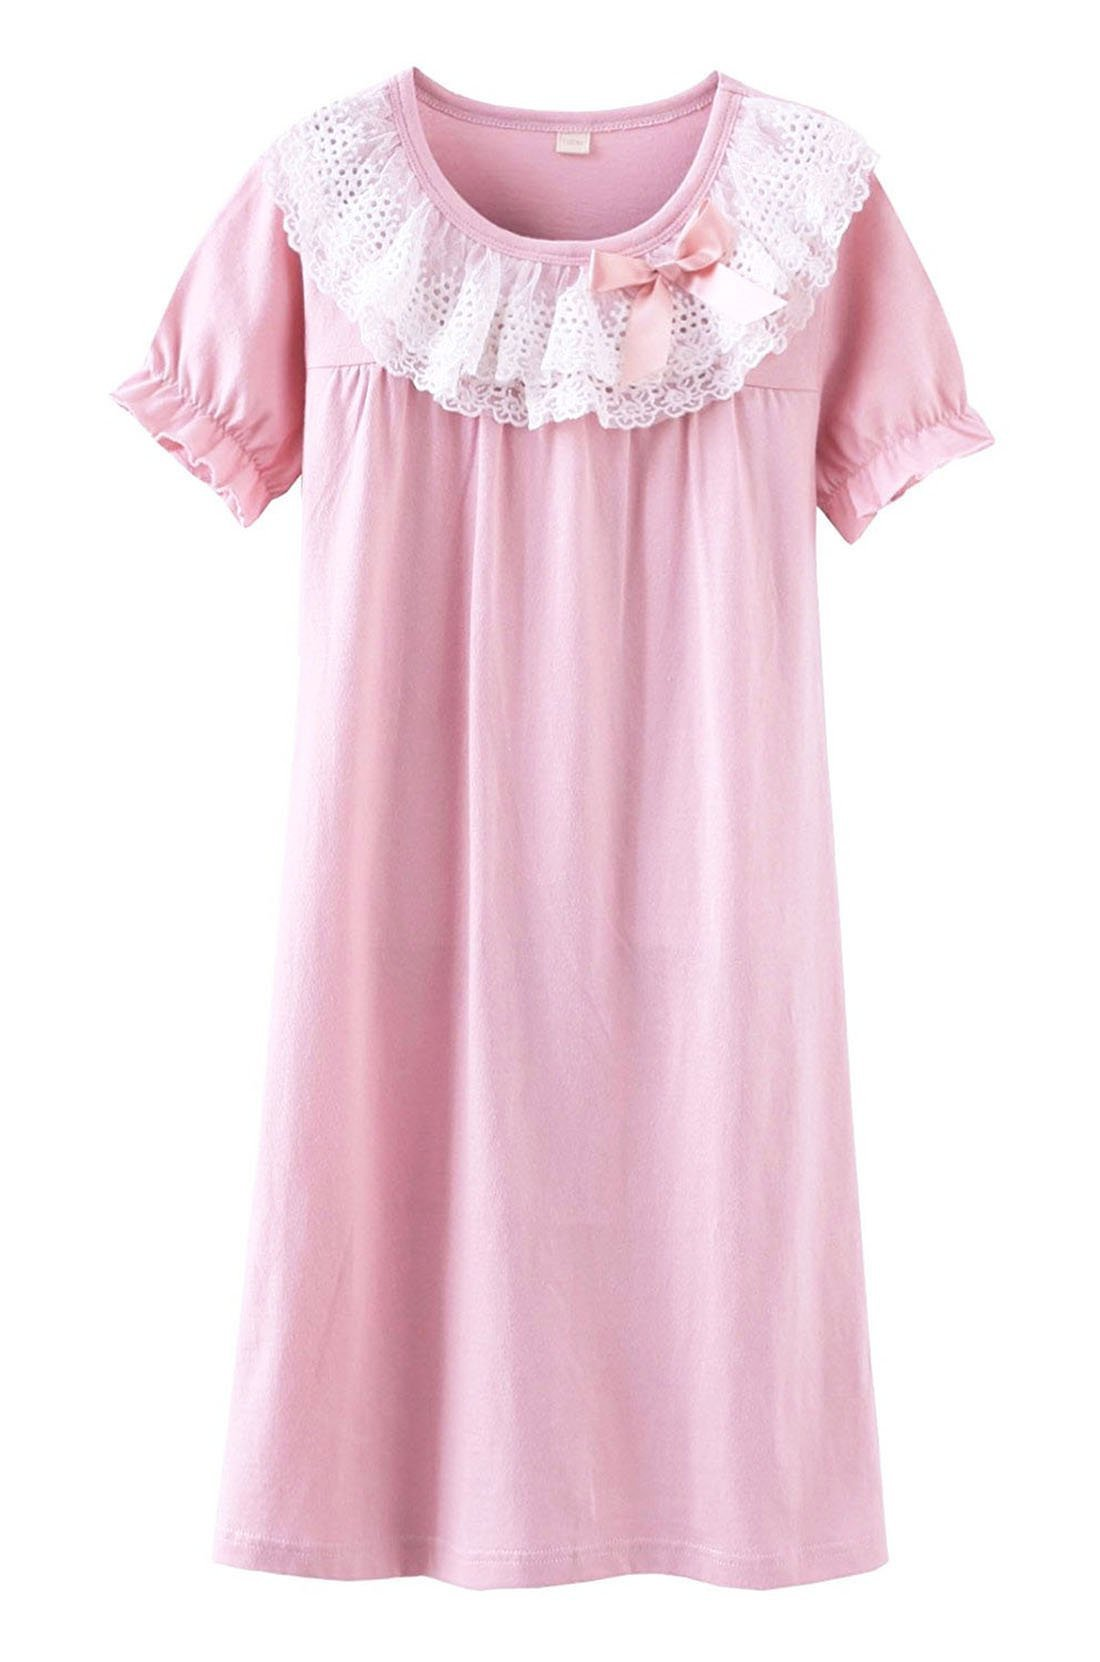 BAIYIXIN Fashion Store Girls Princess Lace Bowknot Nightgown Summer Cotton Sleepwear Dress Long Shirt, Pink, 6-7